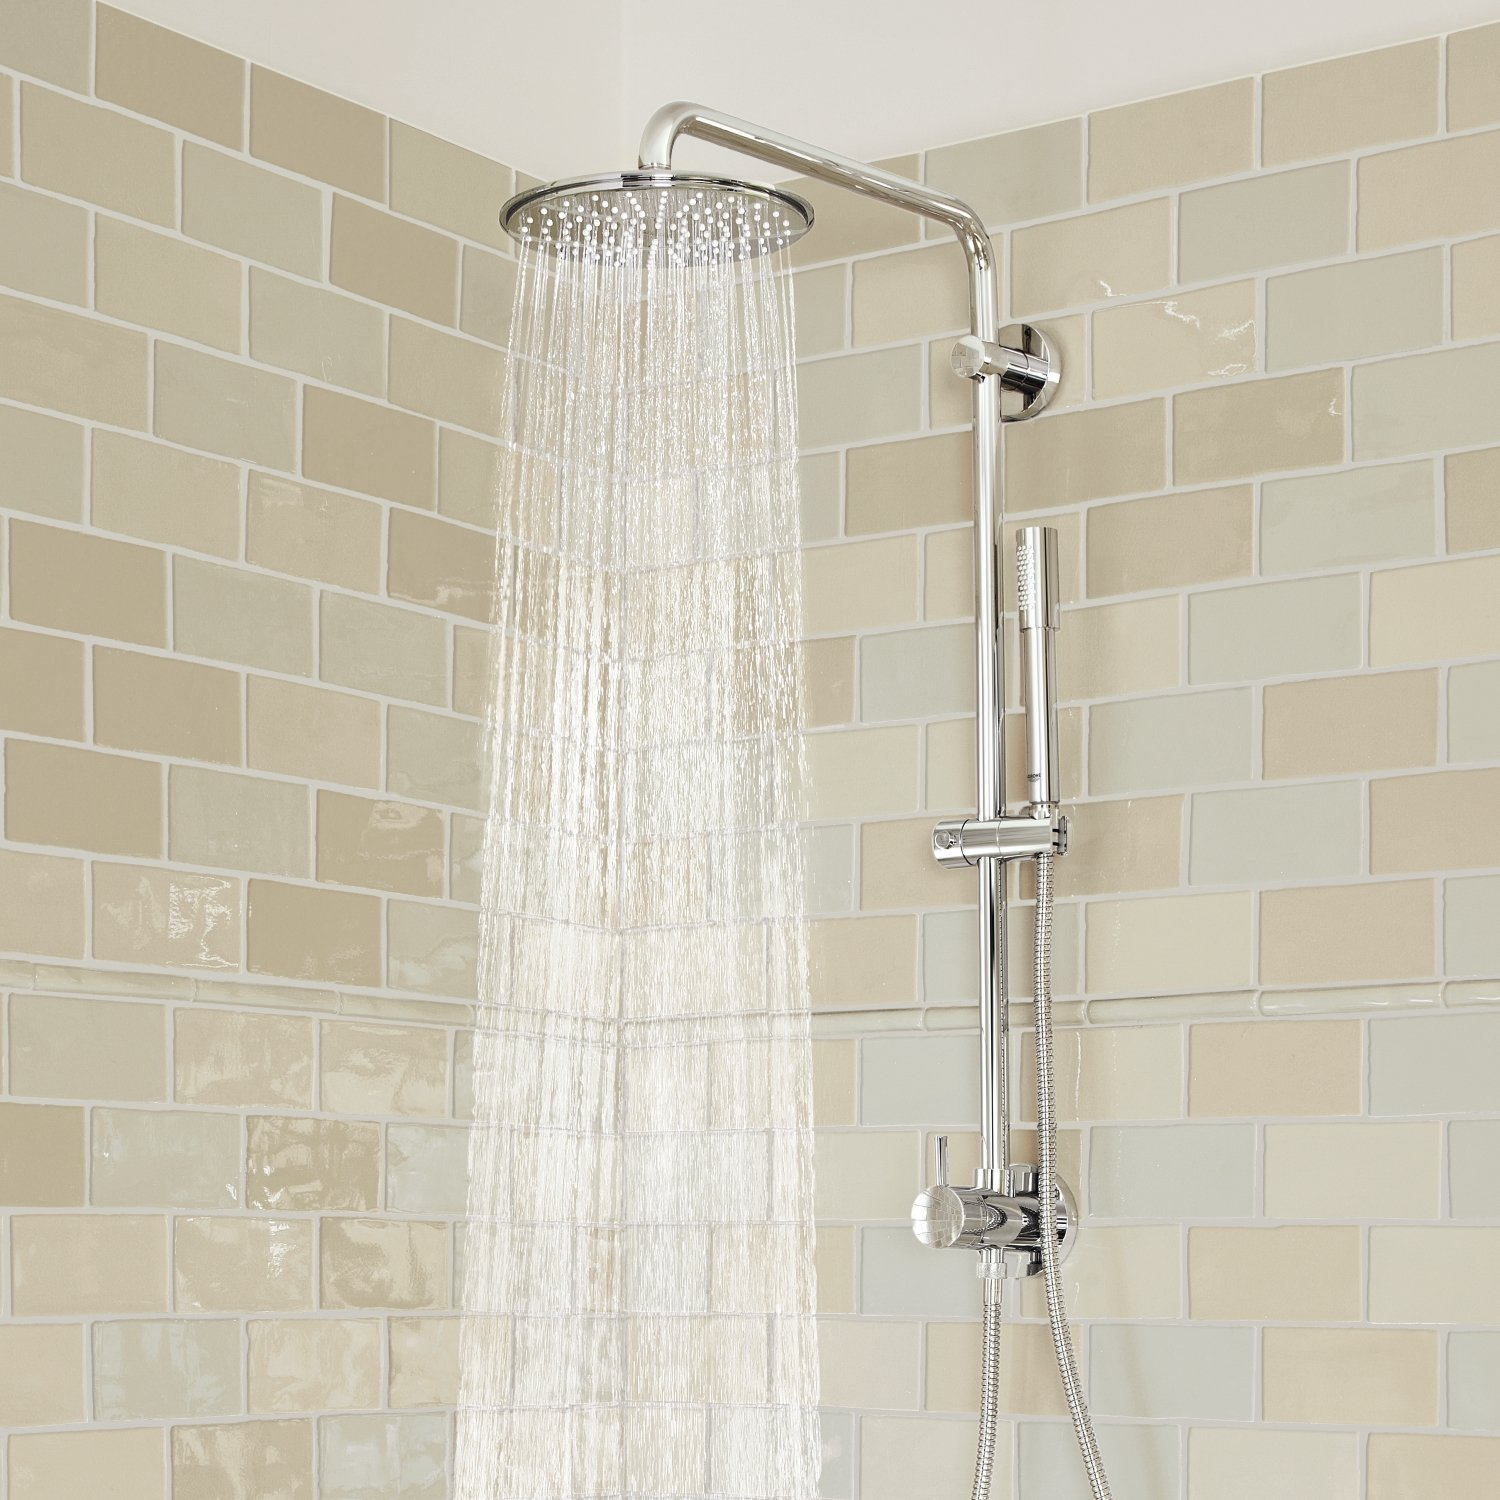 blogs buying bathroom delta shower guides custom system systems com faucetlist